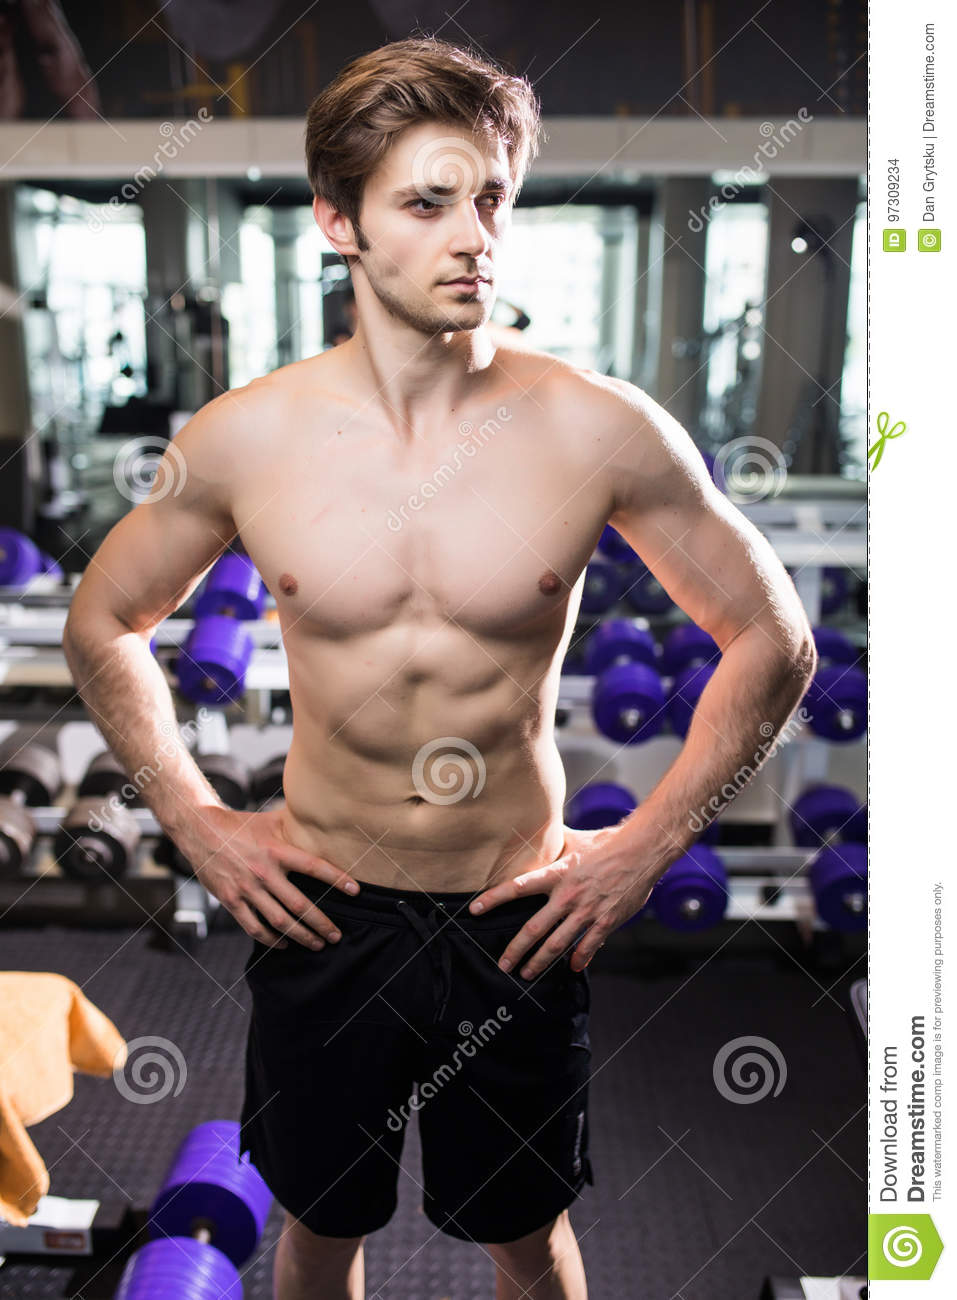 Muscular man working out in gym doing exercises at triceps, strong male naked torso abs. Fitness